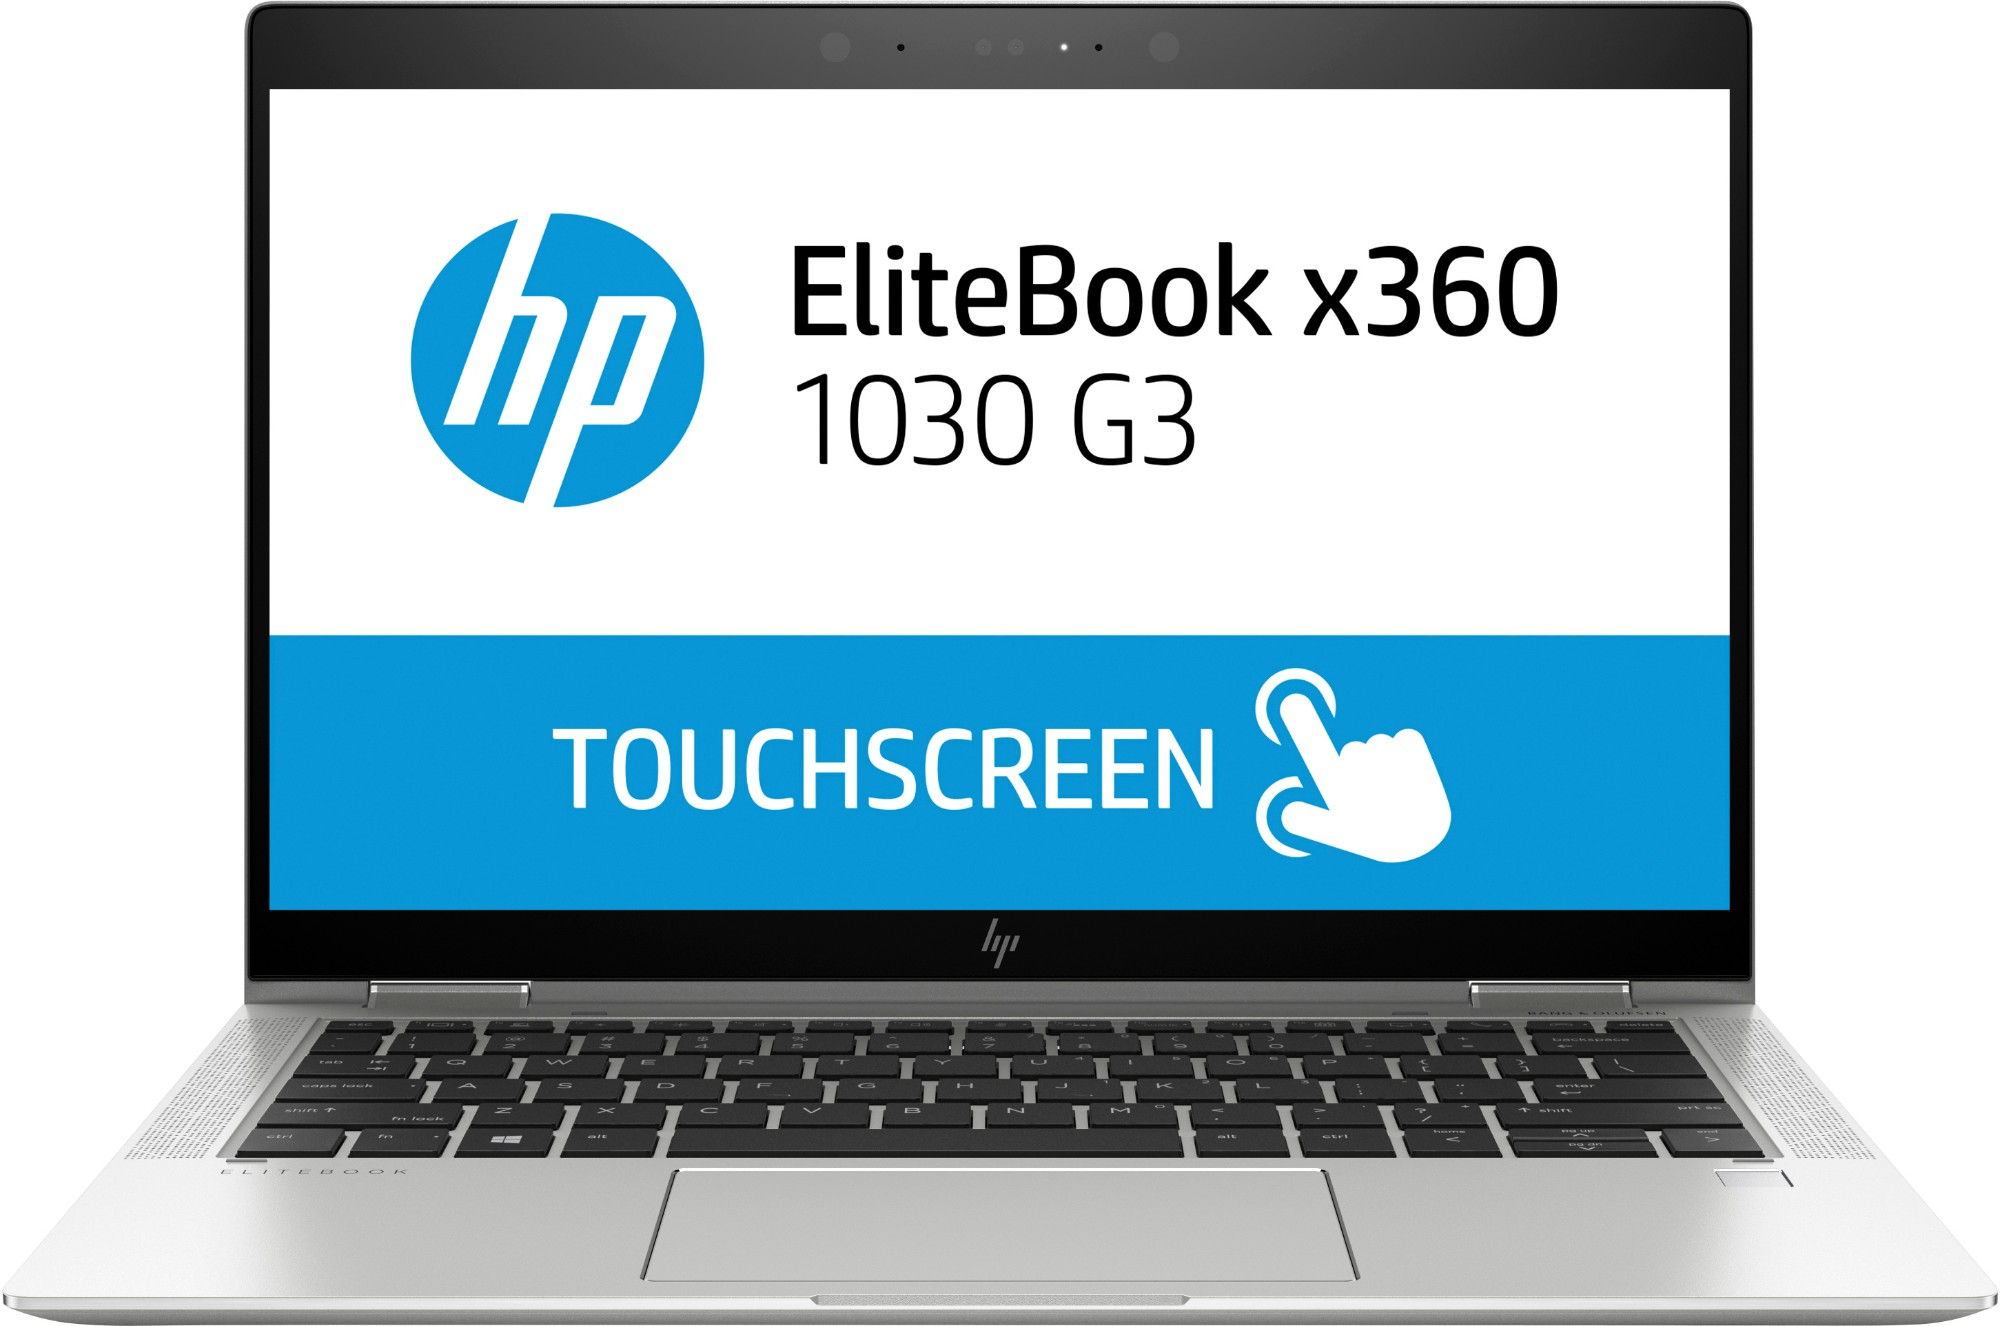 HP EliteBook x360 1030 G3 Silver Hybrid (2-in-1) 33.8 cm (13.3